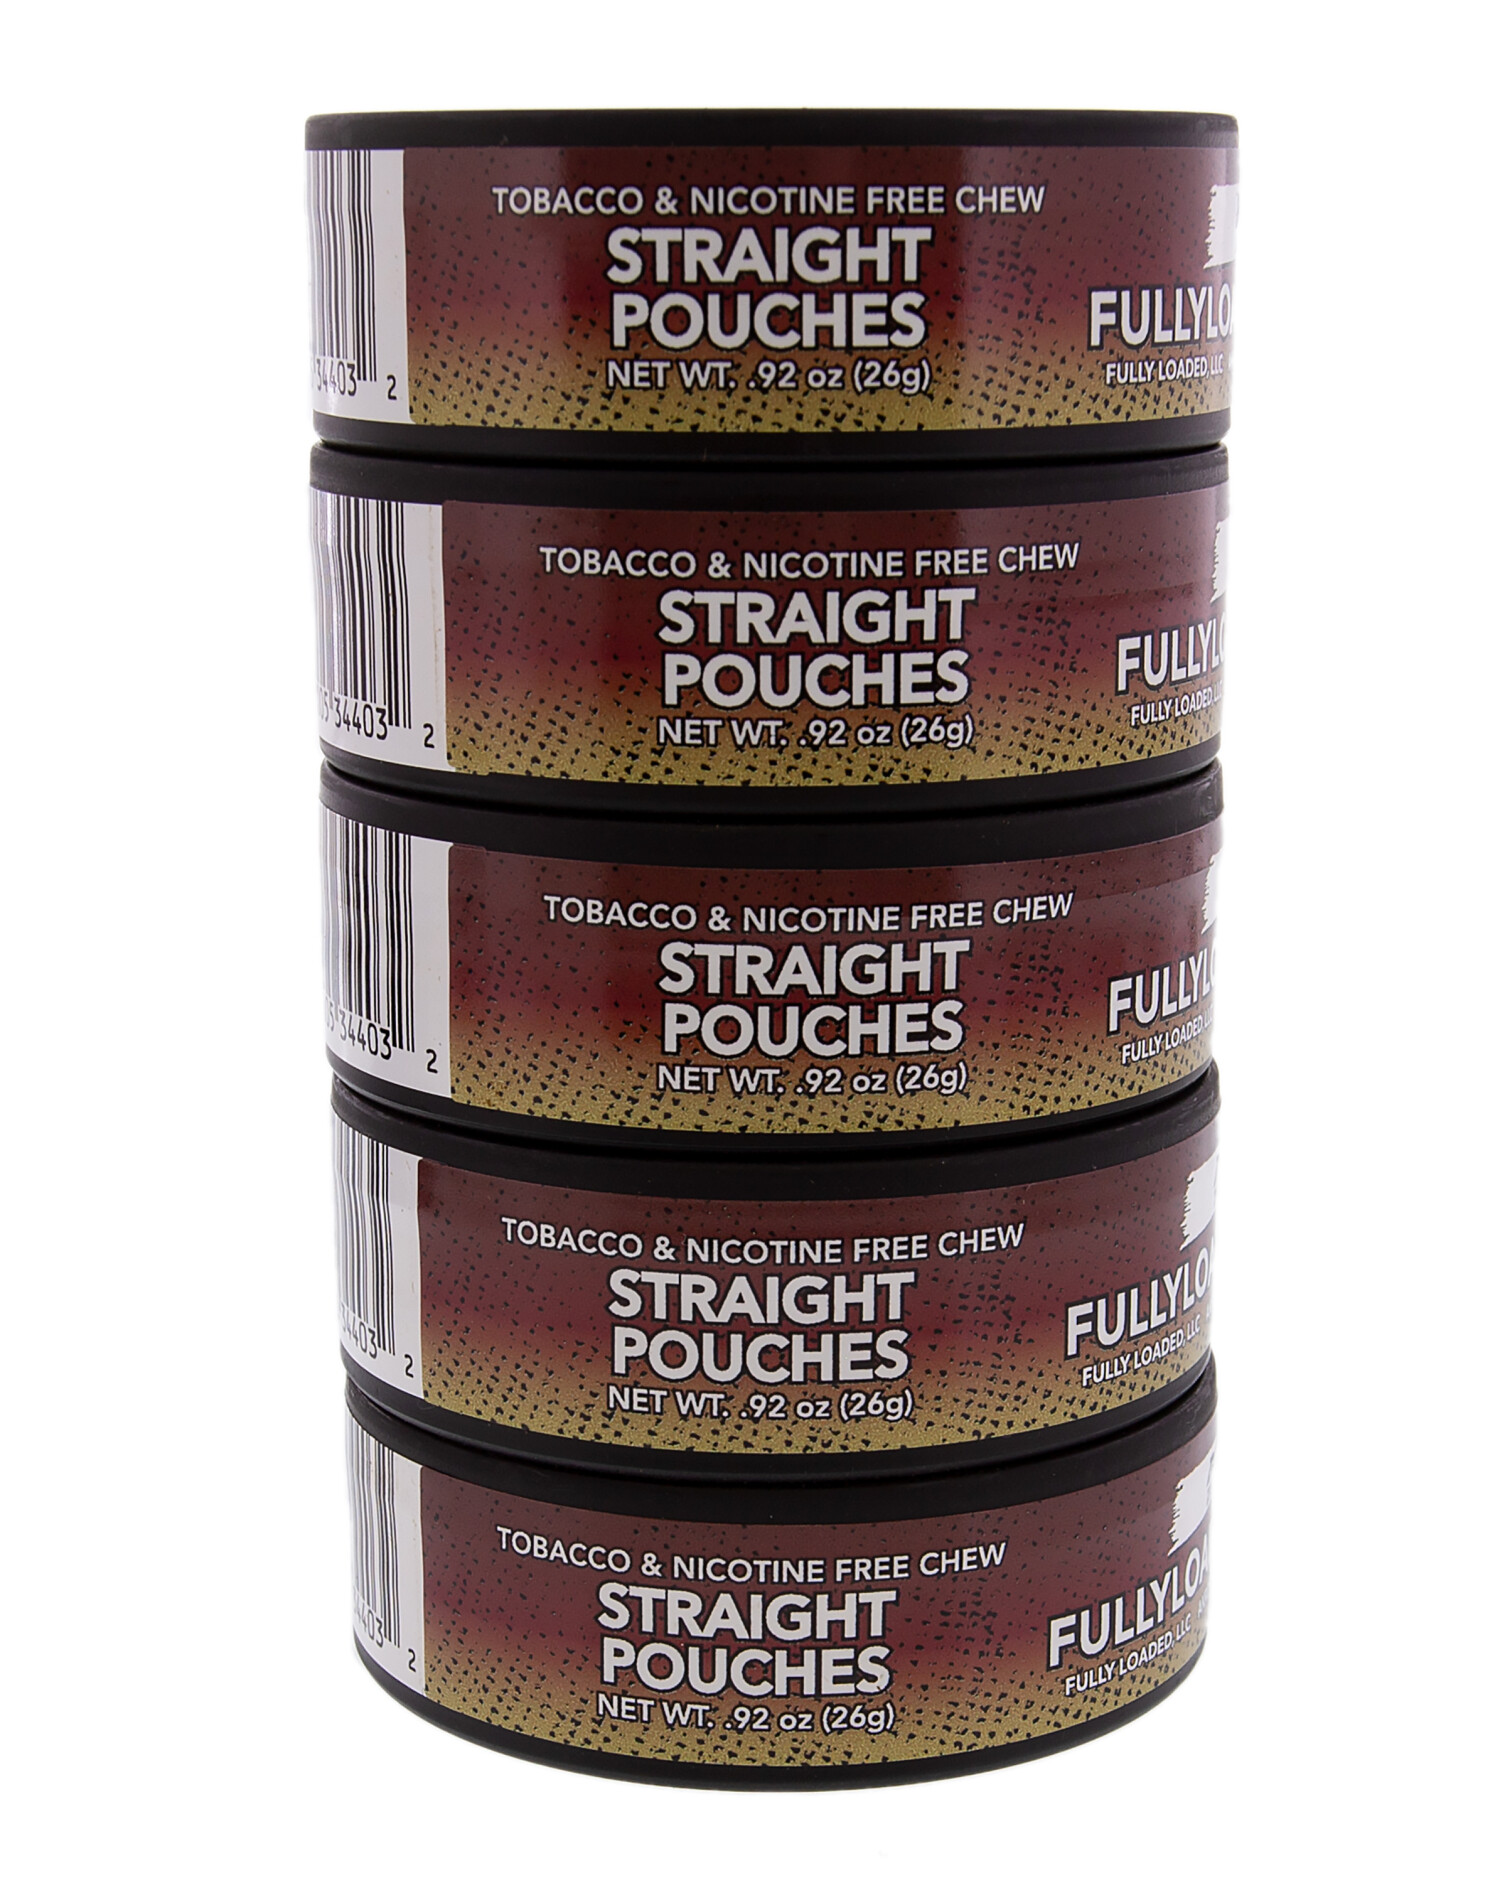 Fully Loaded Chew Tobacco and Nicotine Free Straight Bullseye Pouches Authentic Flavor, Chewing Alternative-5 Cans